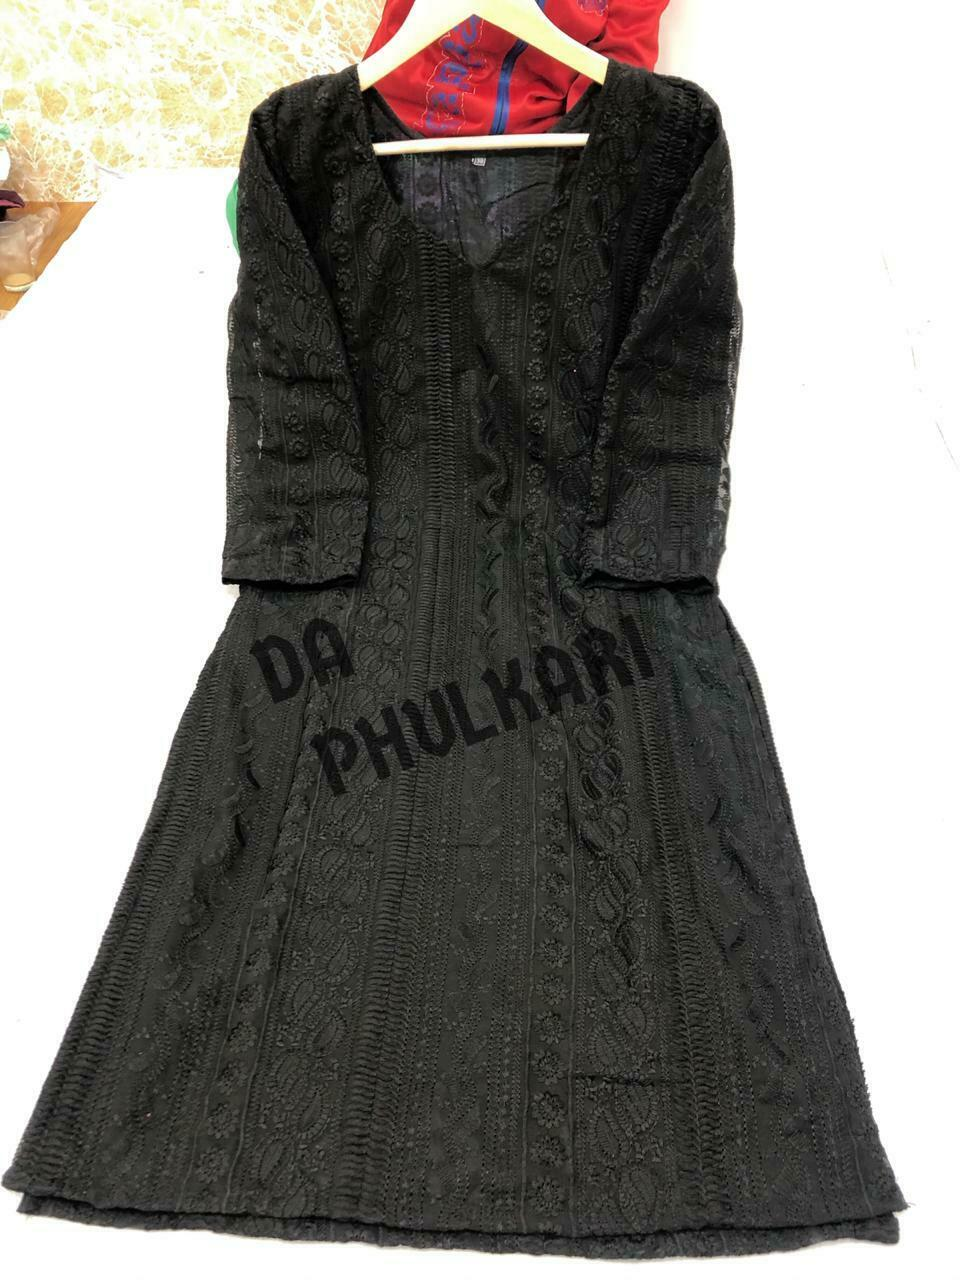 Lto xxl size Long georgette chikan kurtis with cotton lining inside